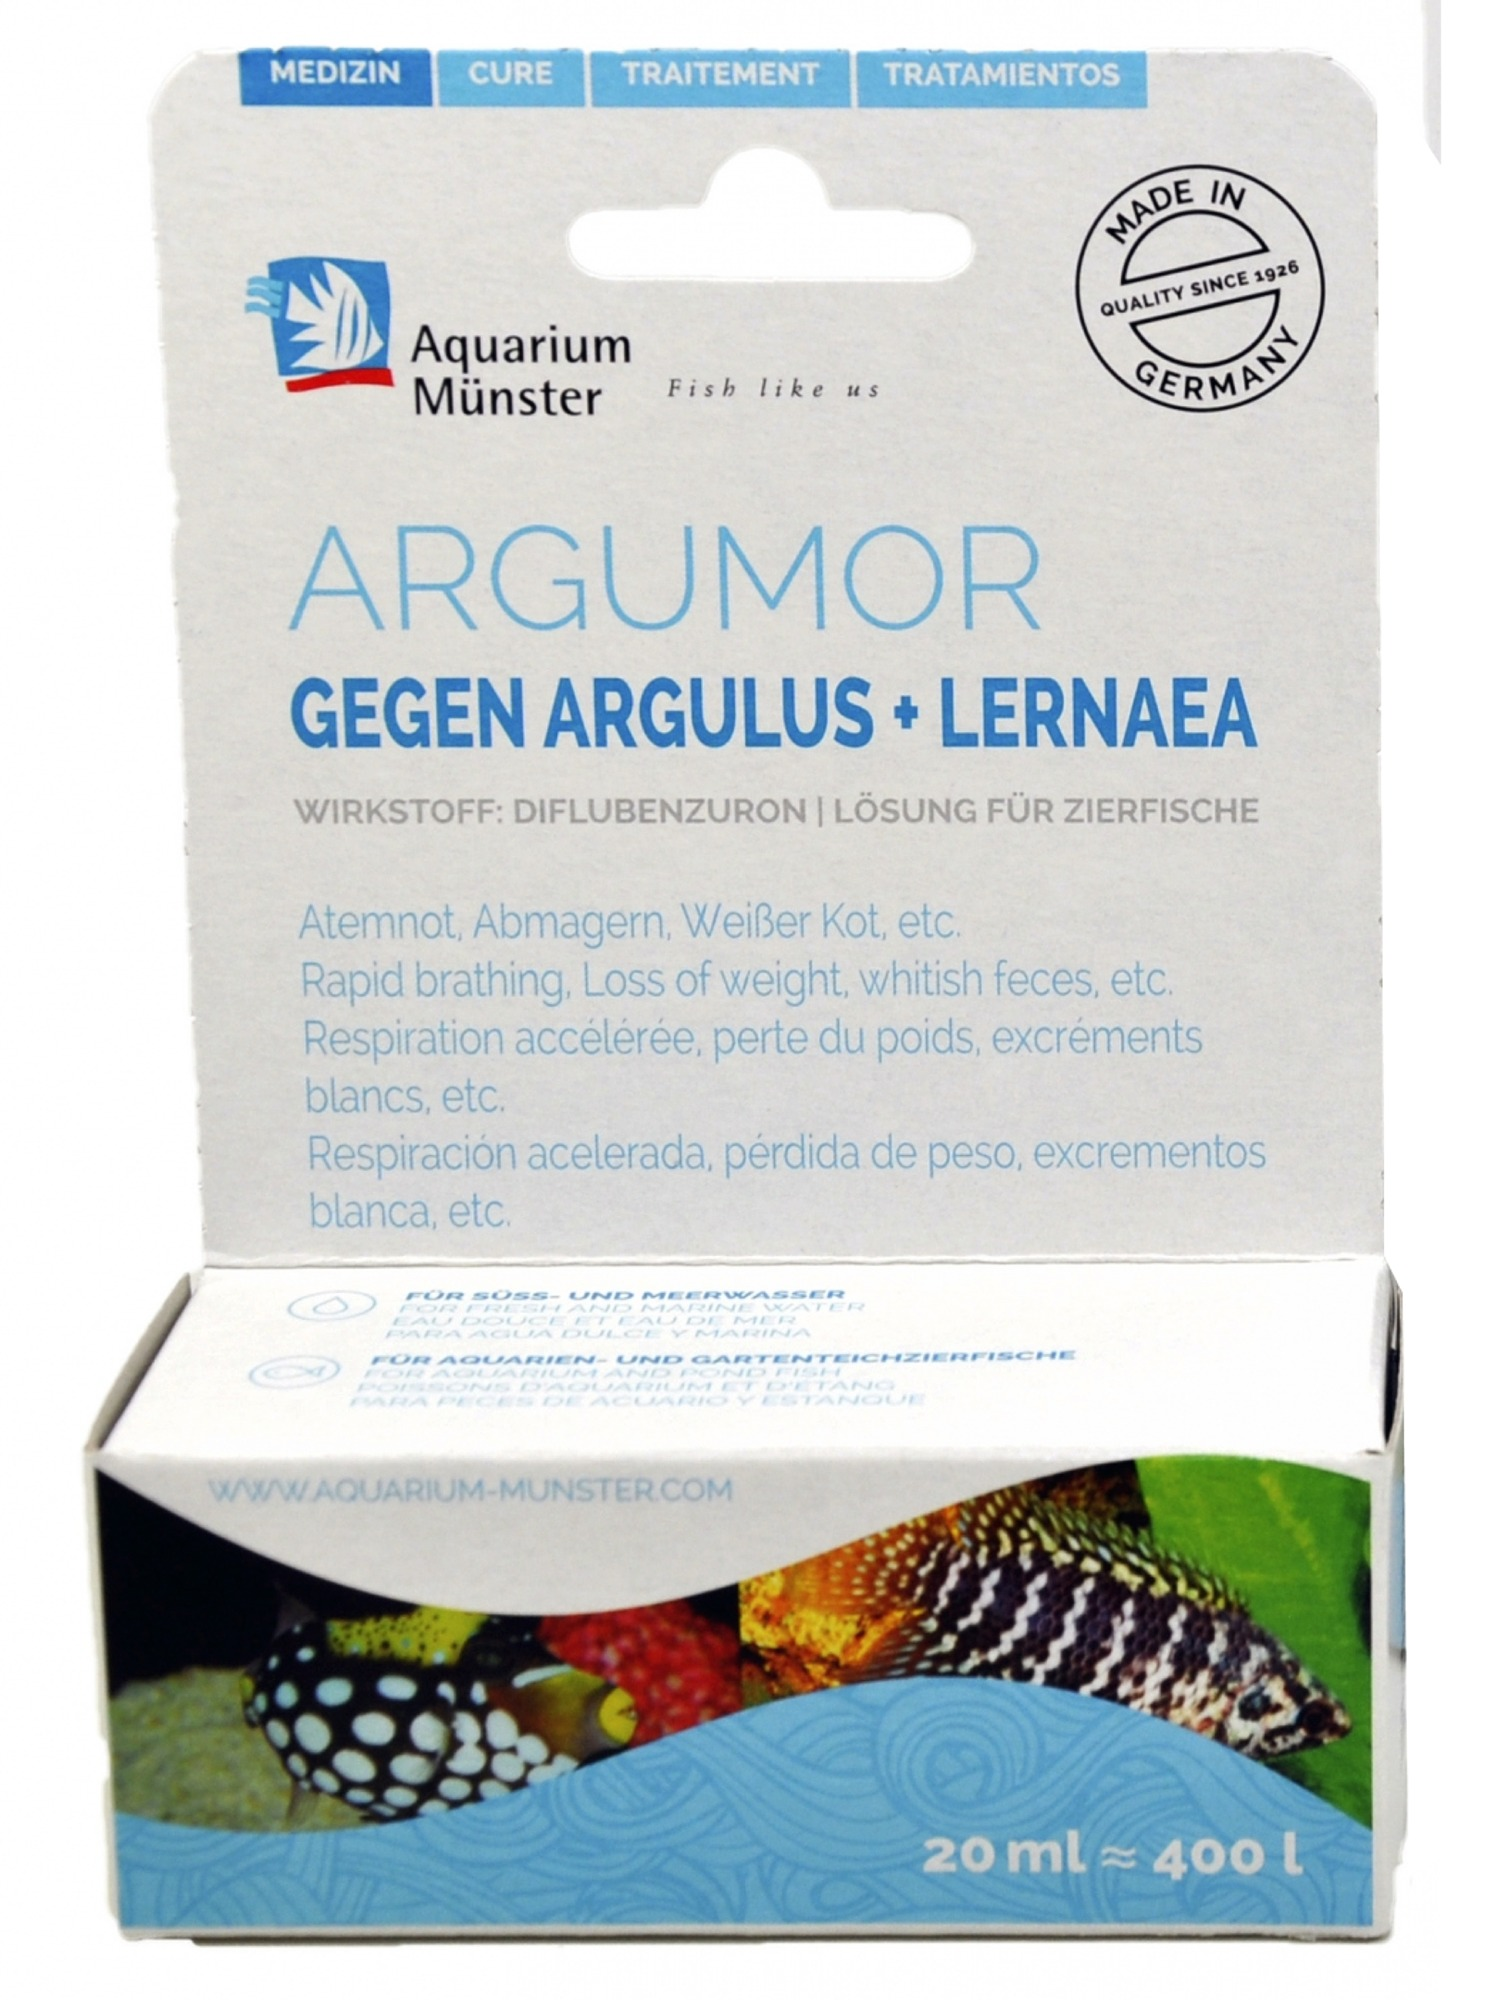 aquarium-munster-argumor-traitement-poisson-aquarium